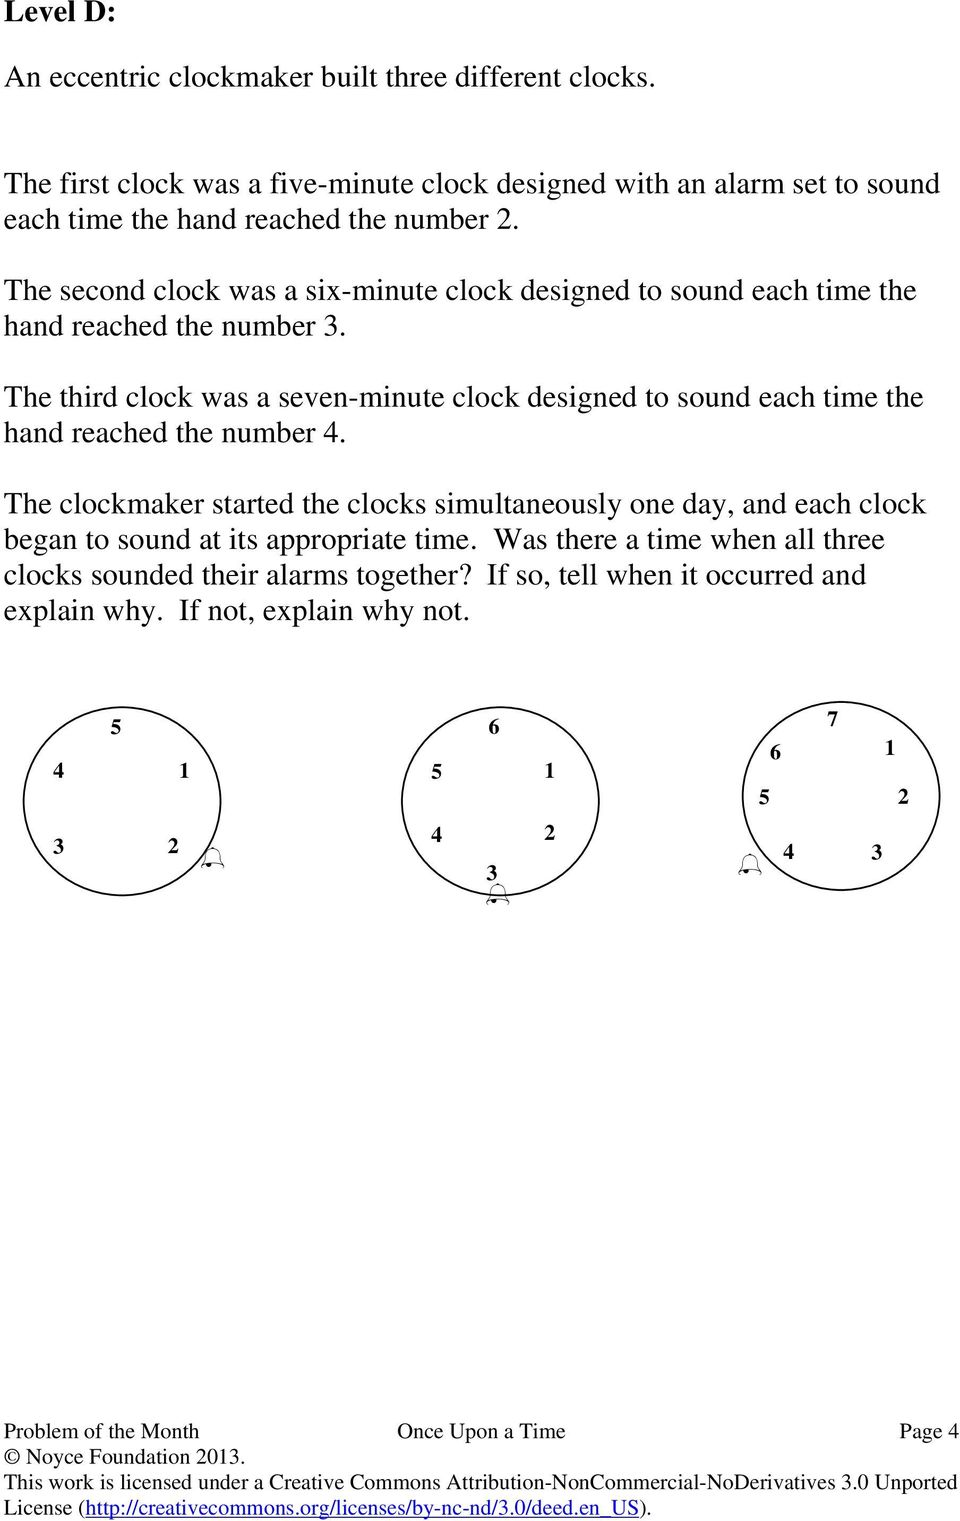 The clockmaker started the clocks simultaneously one day, and each clock began to sound at its appropriate time. Was there a time when all three clocks sounded their alarms together?